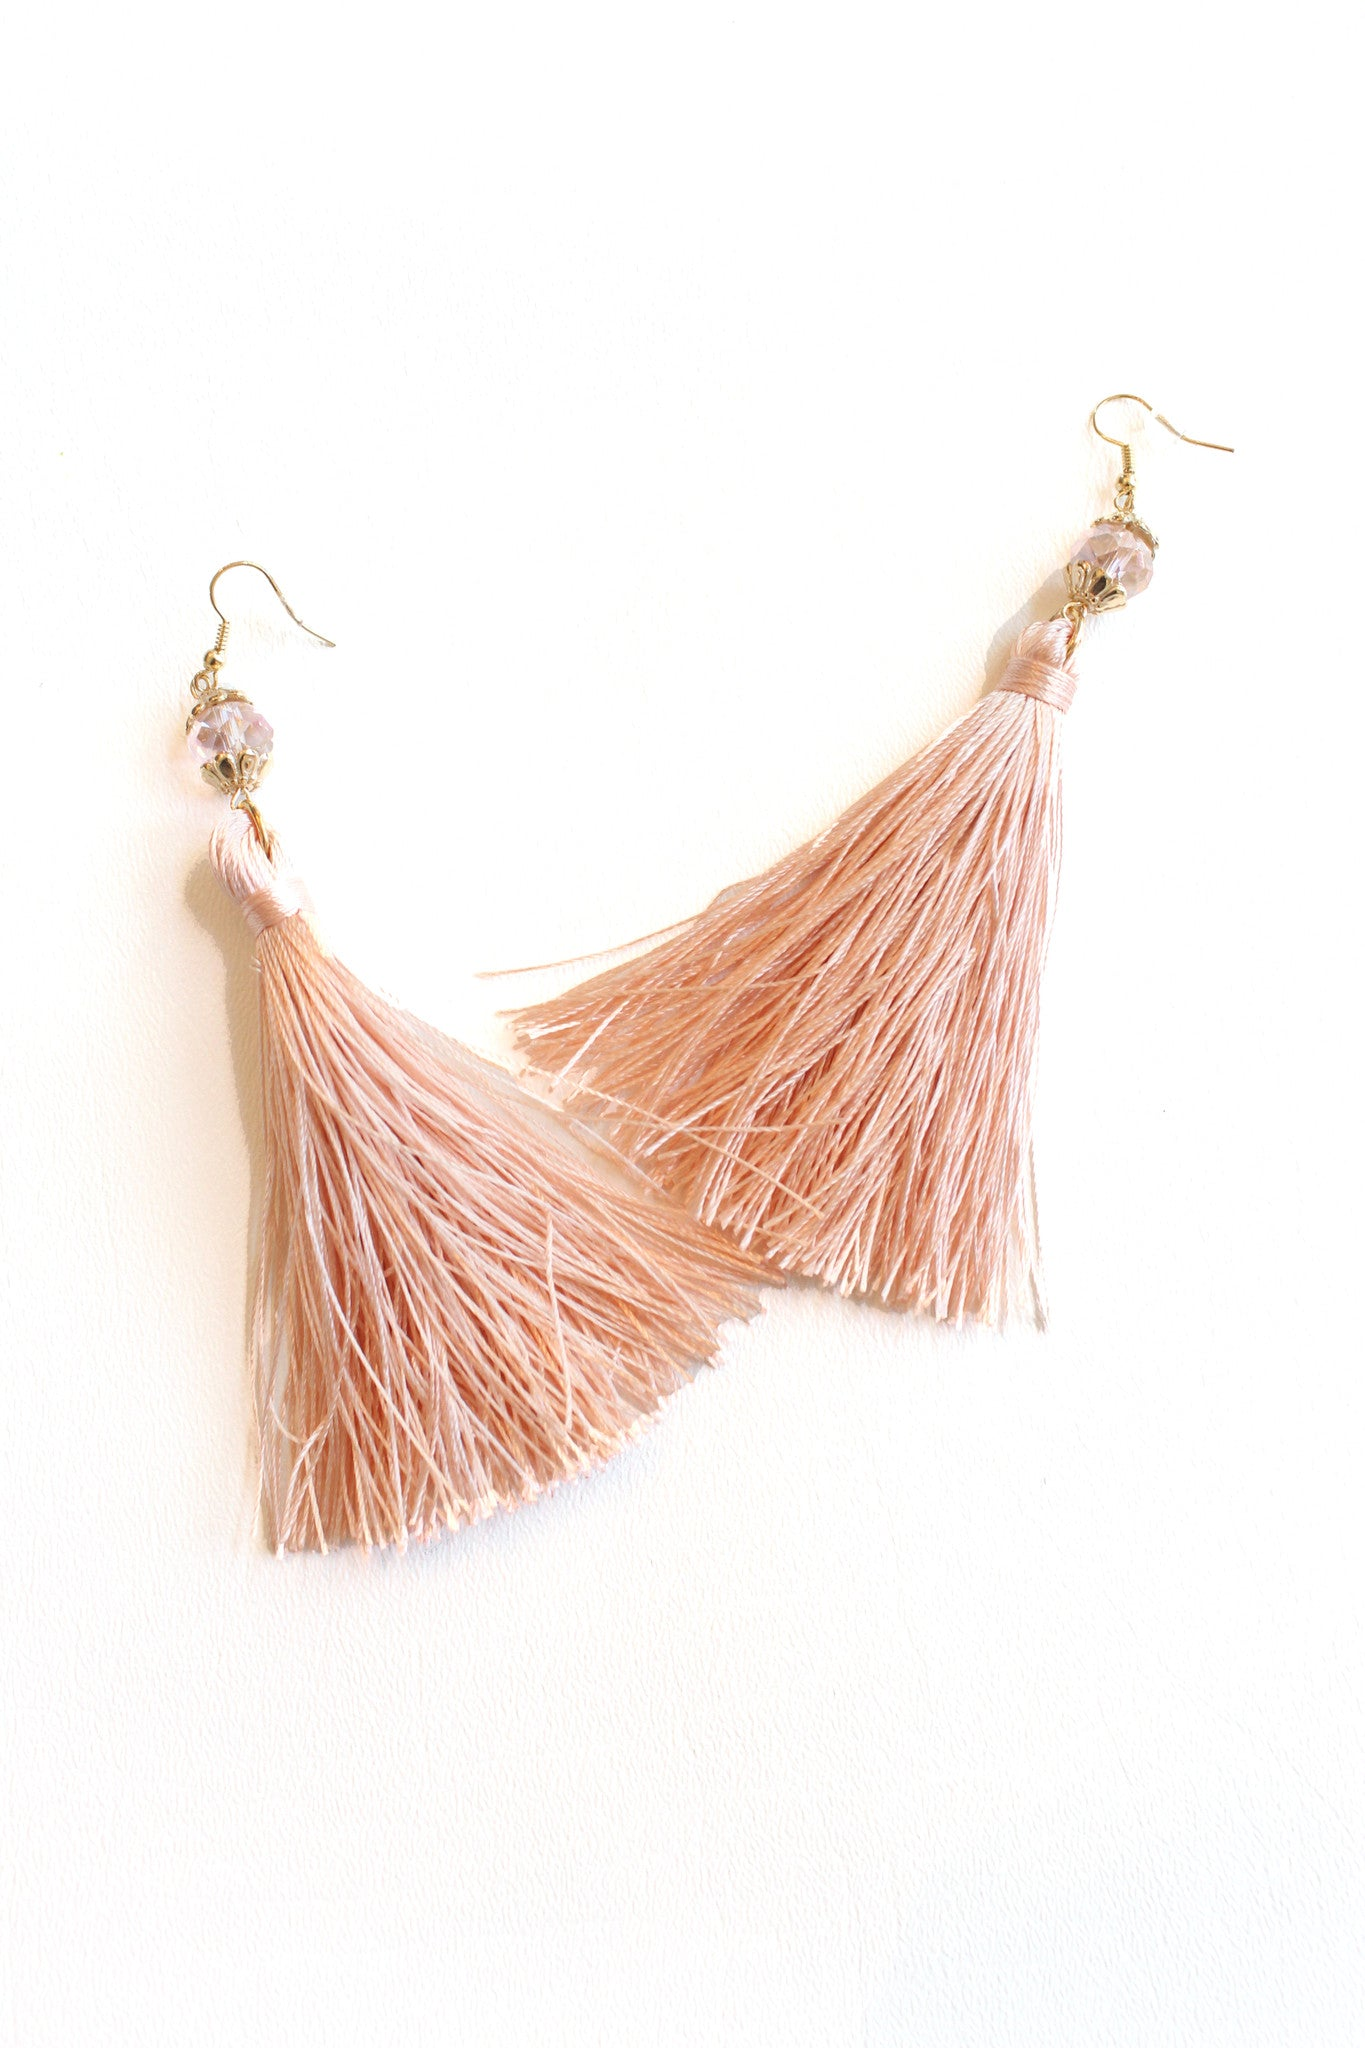 earrings tassle light long beaded women new fashion hook funky filoraa weight tassel girls stylish for and